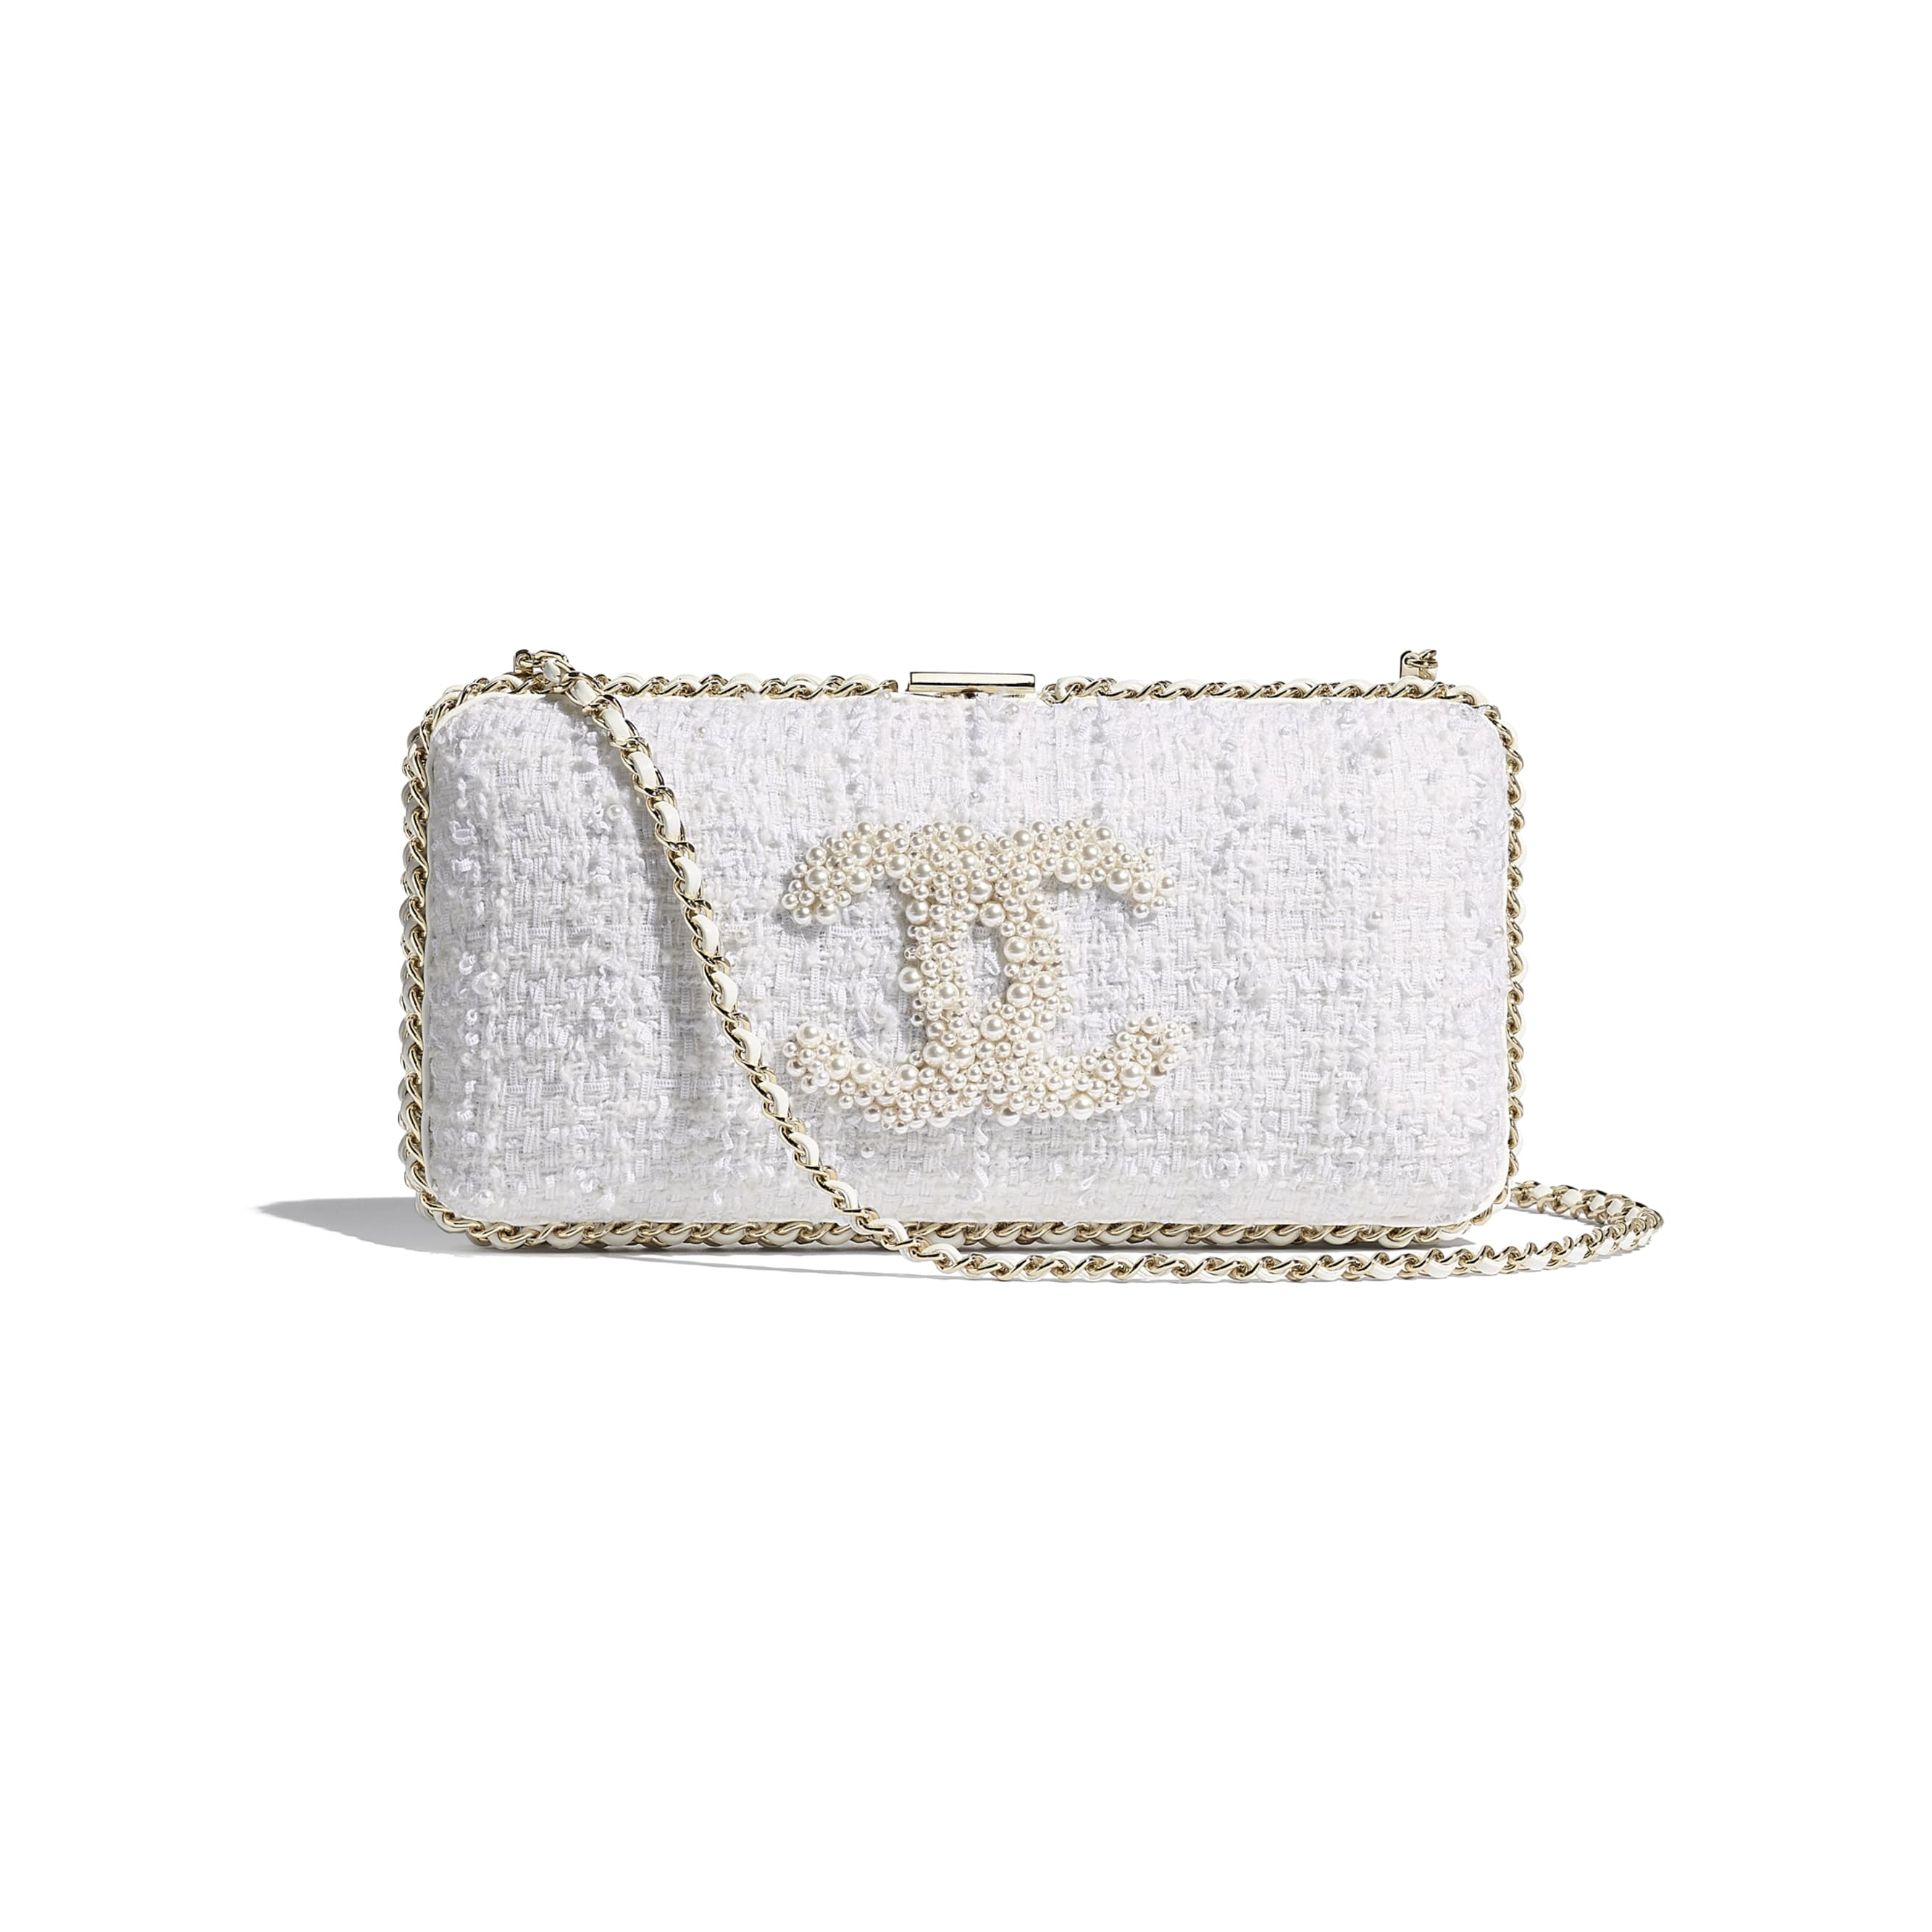 Evening Bag - Ecru - Tweed, Crystal Pearls & Gold-Tone Metal - CHANEL - Default view - see standard sized version